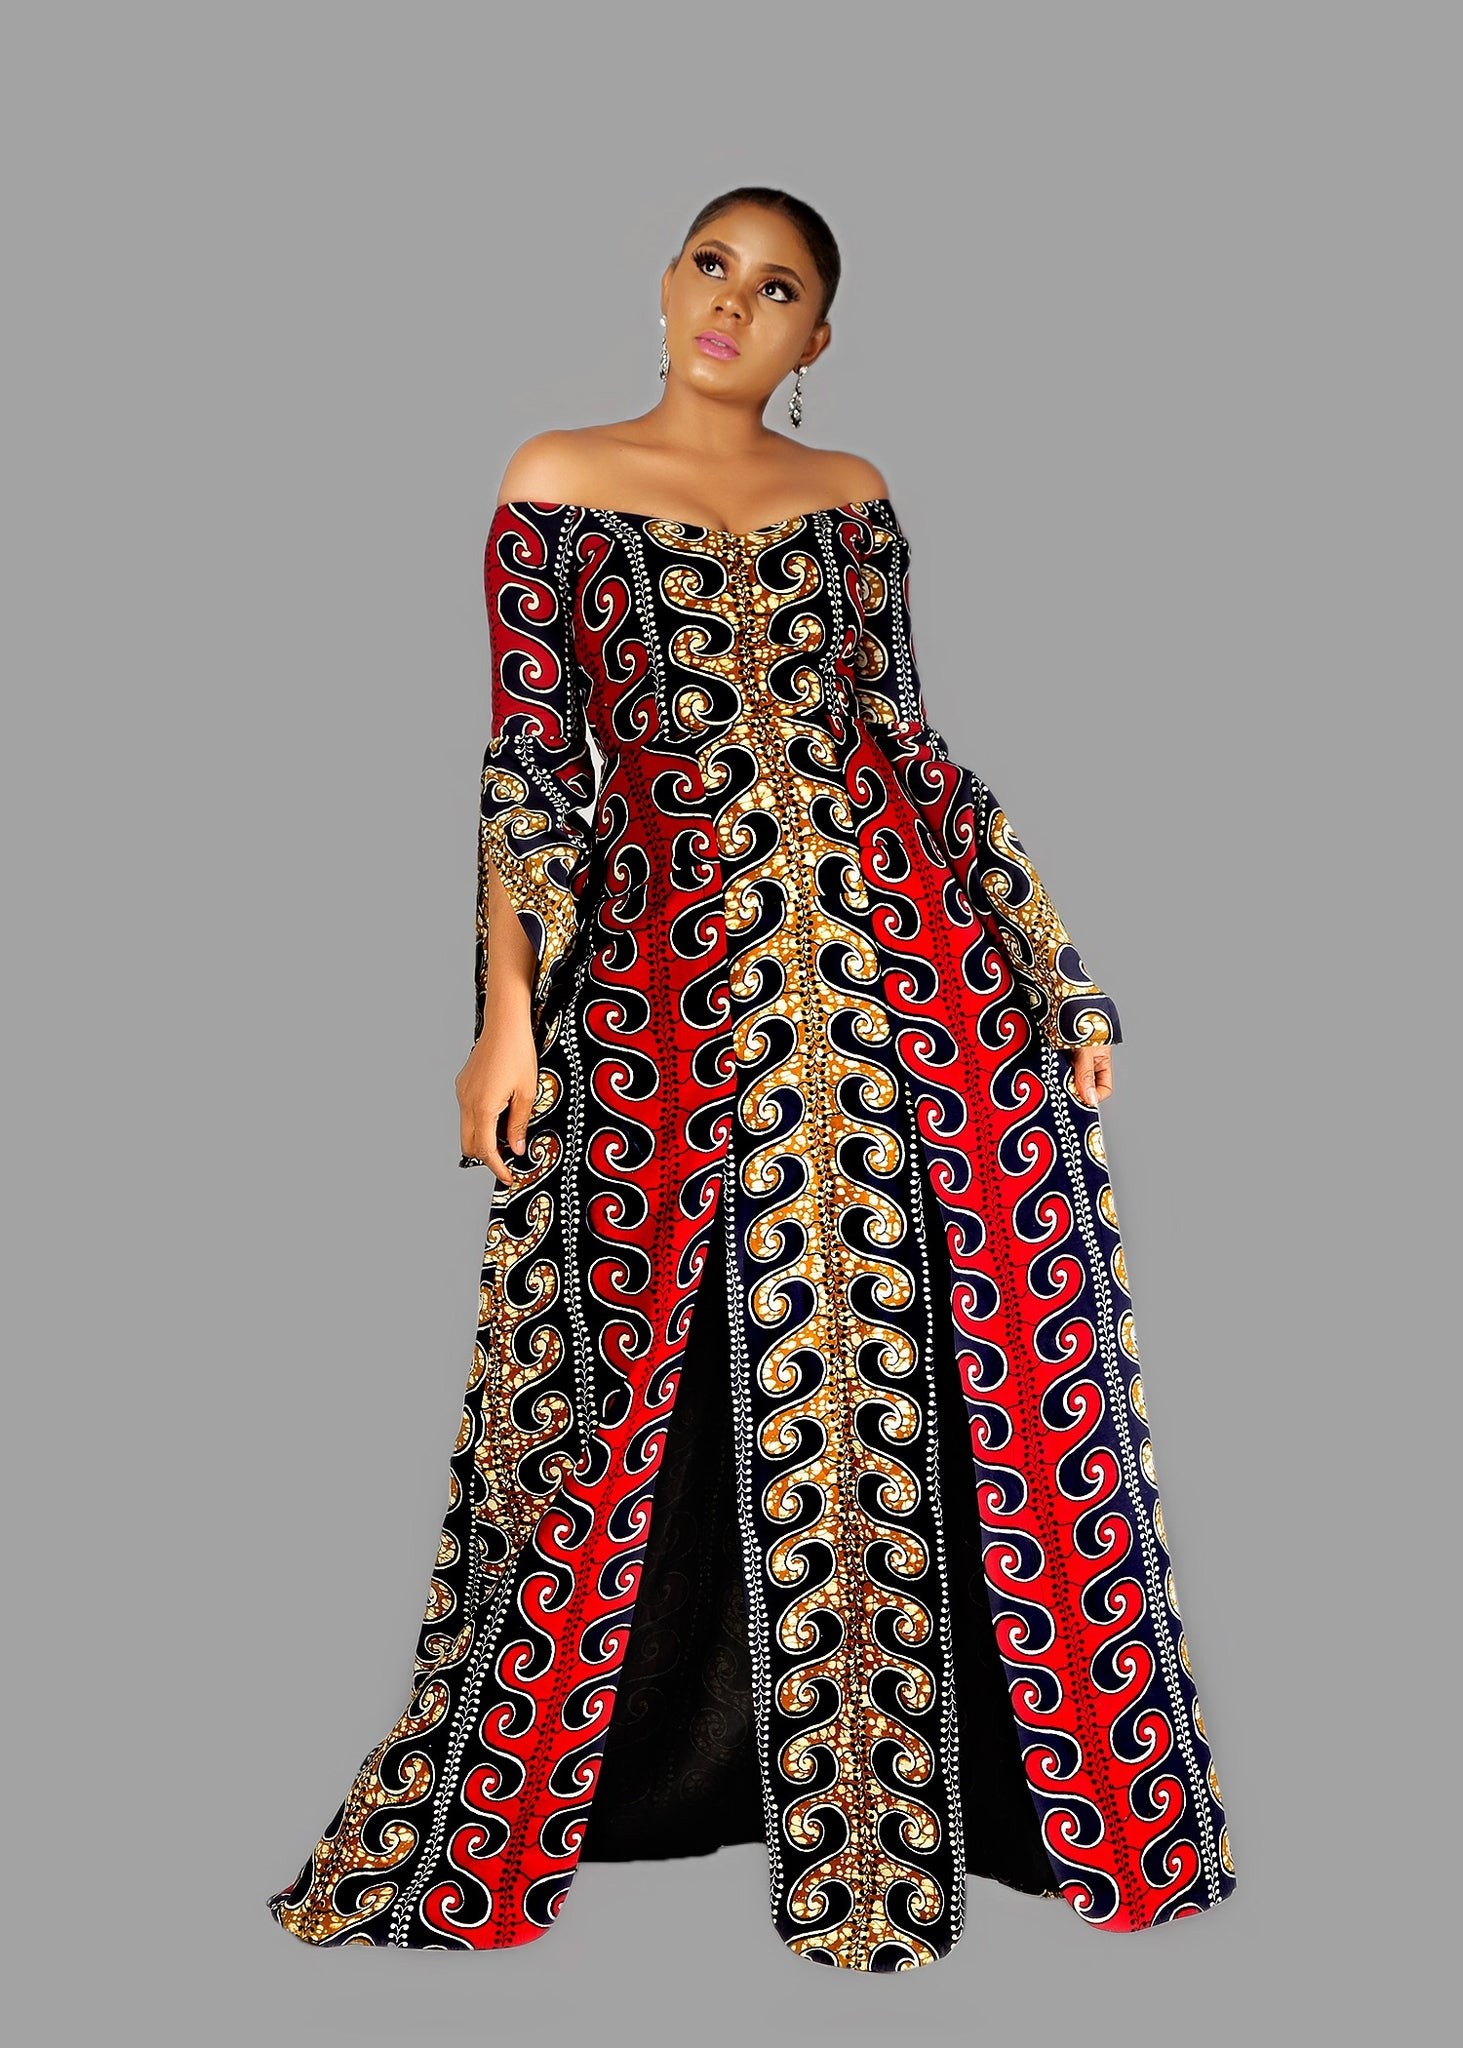 973a5f85a532 Beautiful African Print Maternity Dresses